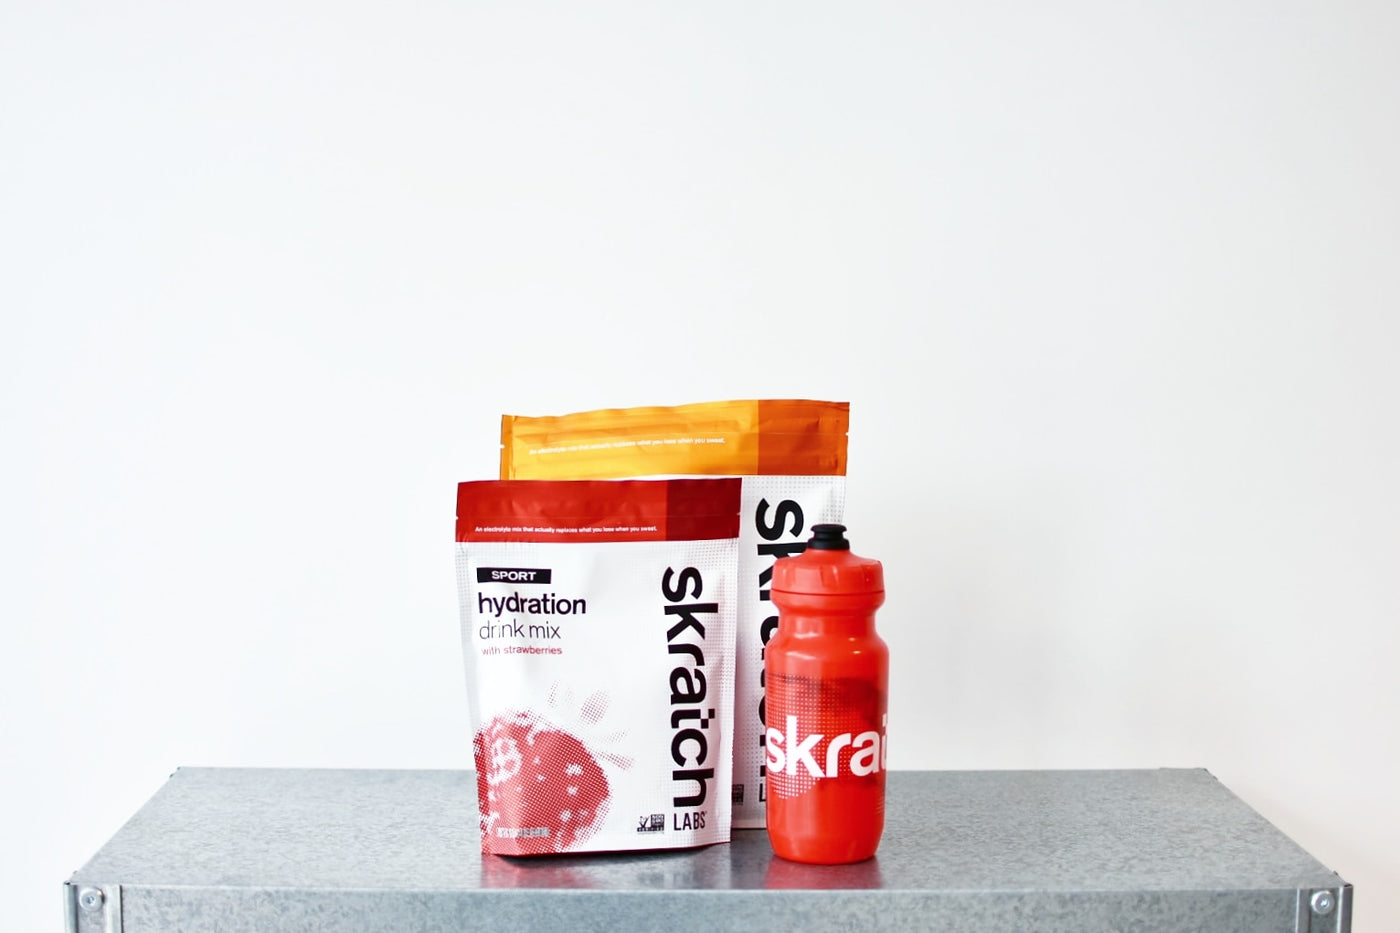 New Product | Skratch Labs Nutrition and Hydration